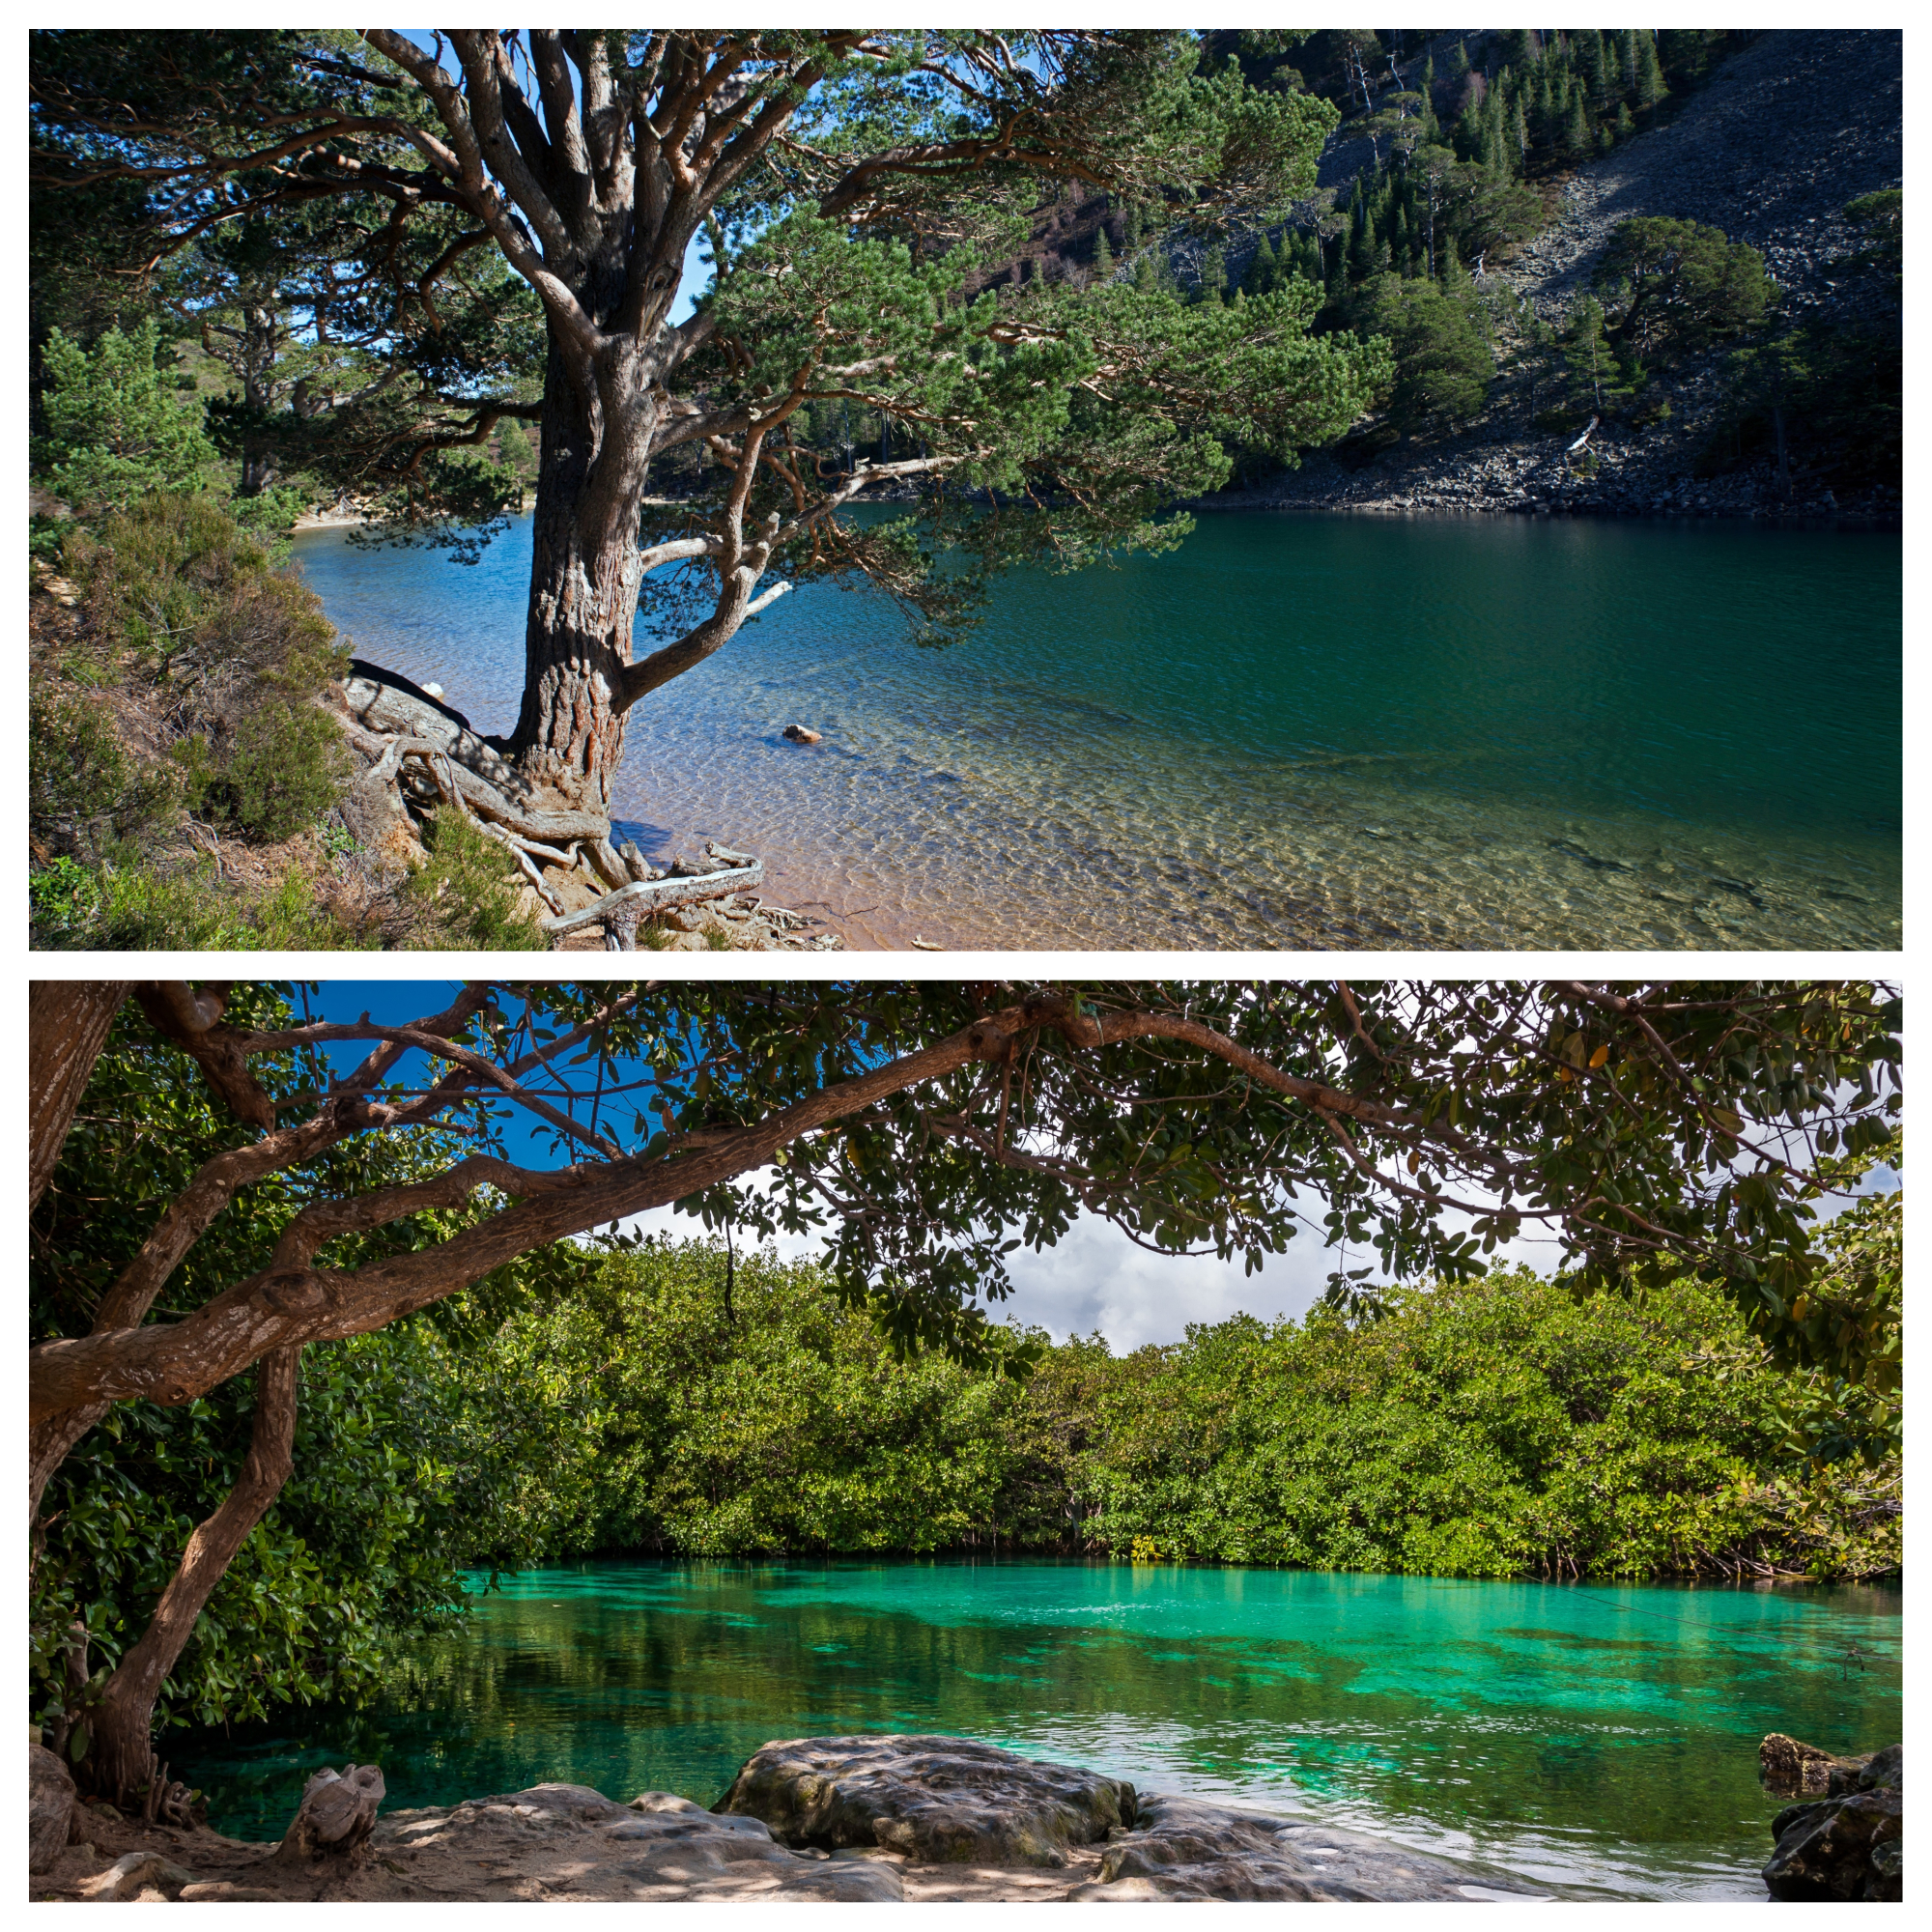 Top - An Lochan Uaine, Scotland; Bottom - Casa Cenote, Tulum, Mexico (Alamy/Thinkstock/PA)